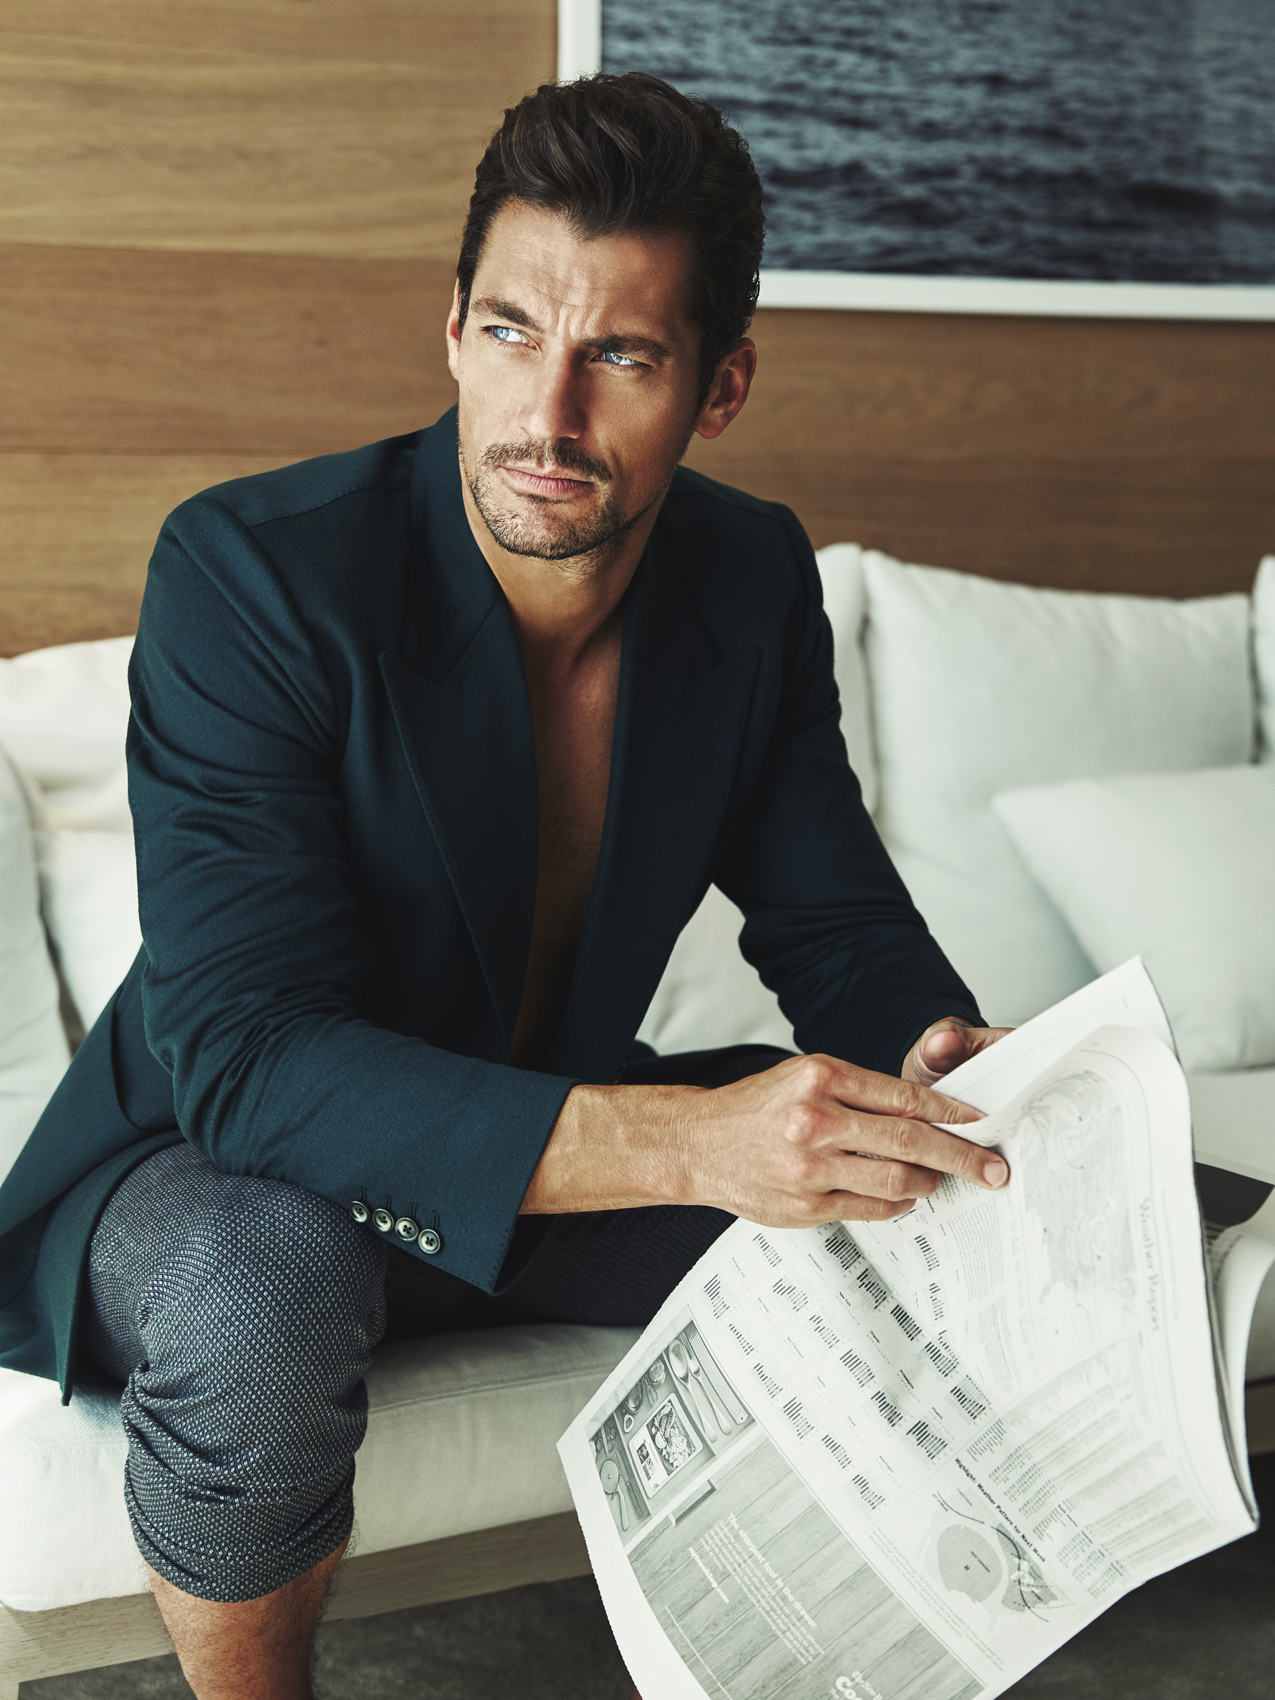 20150711_JR_DavidGandy_0391B_flat_web